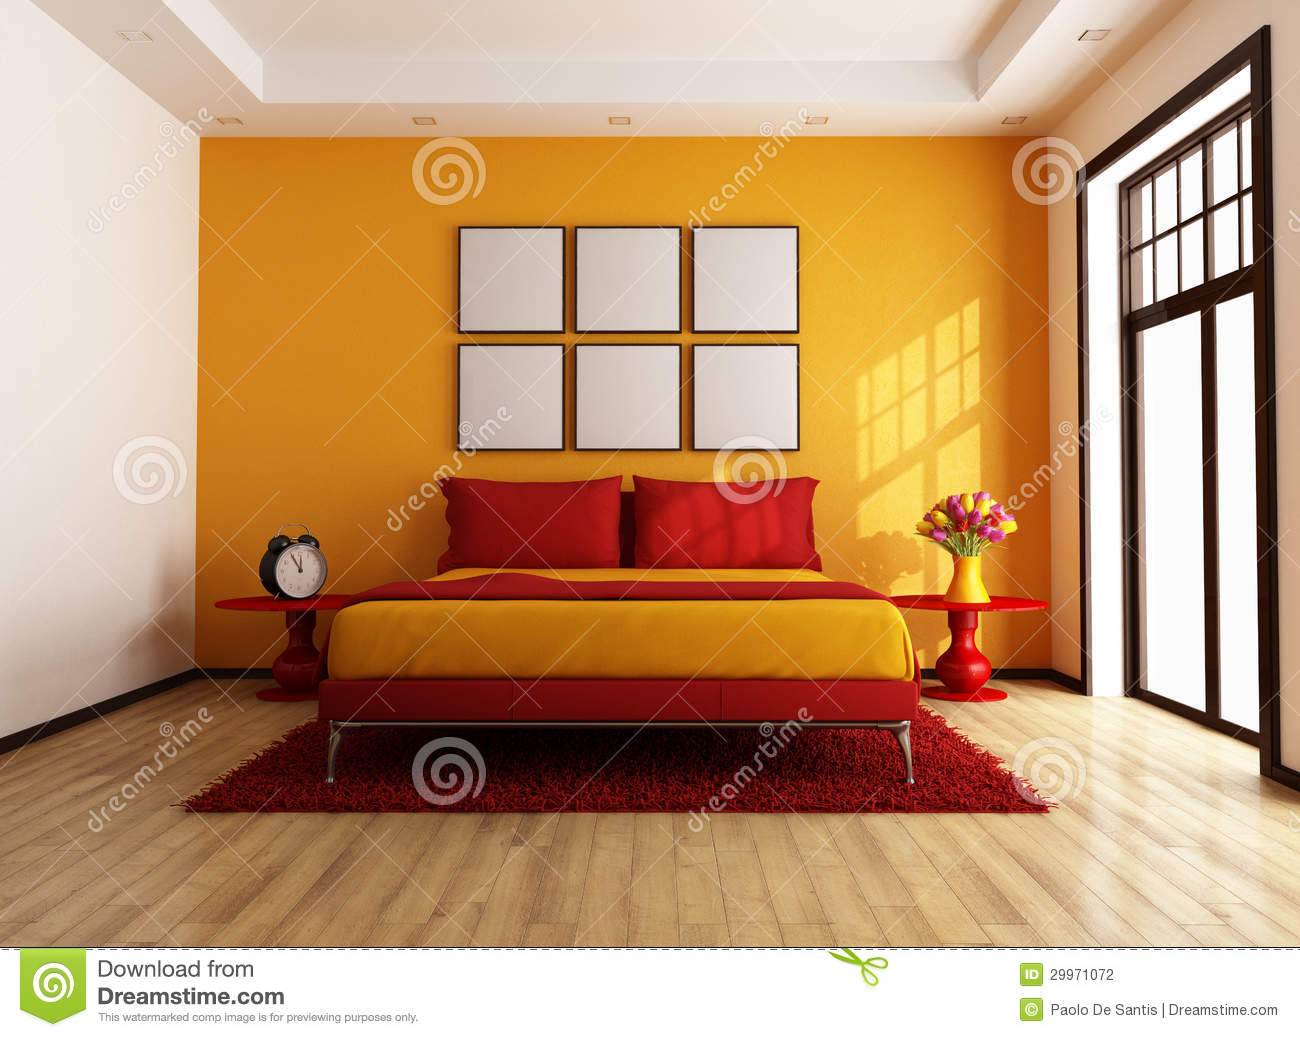 Chambre Coucher Contemporaine Rouge Et Orange